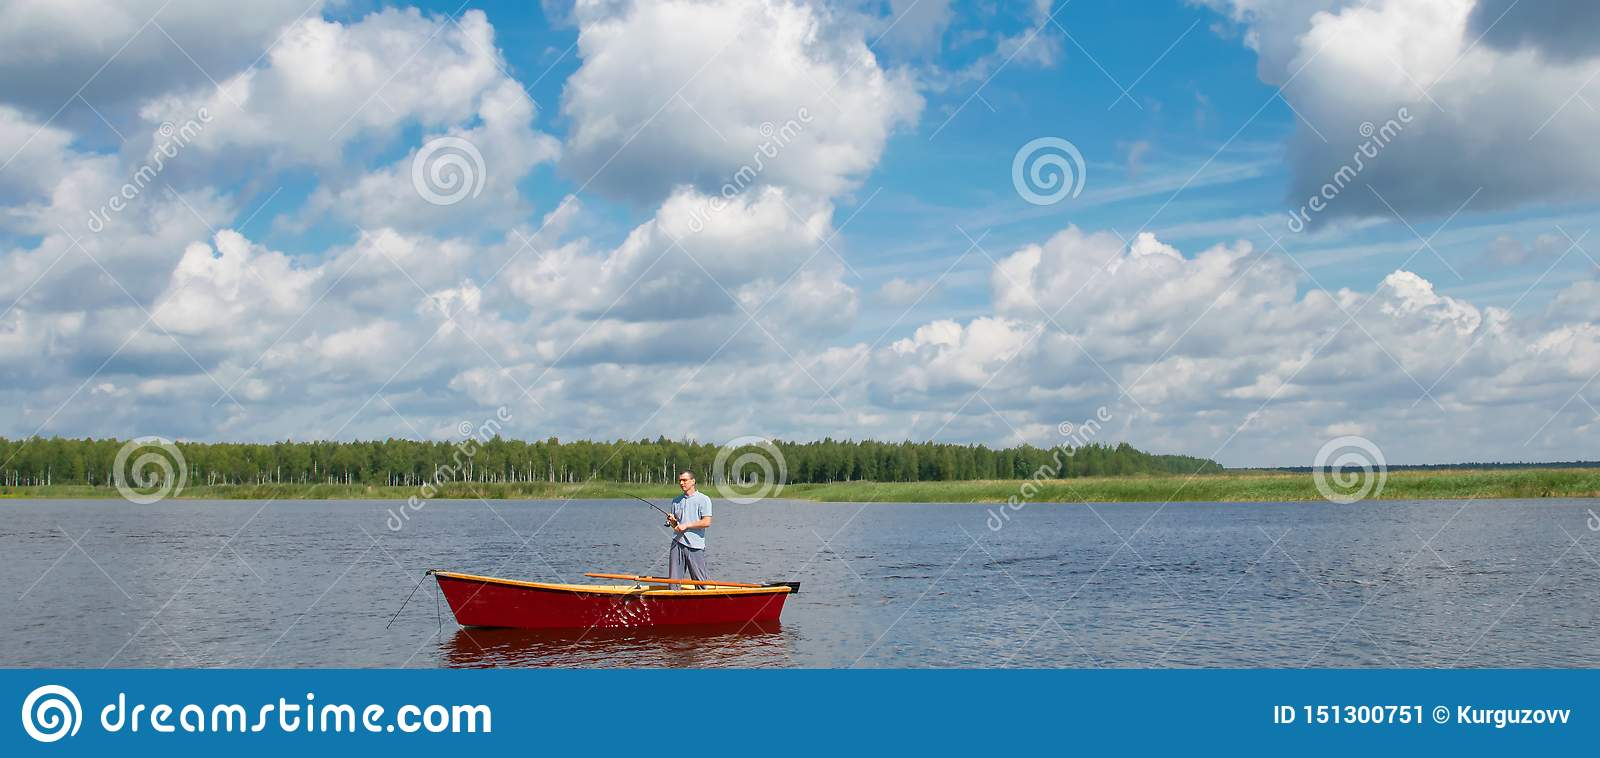 A man in a boat, in the center of the lake, holds a fishing pole to catch a big fish, against a beautiful sky